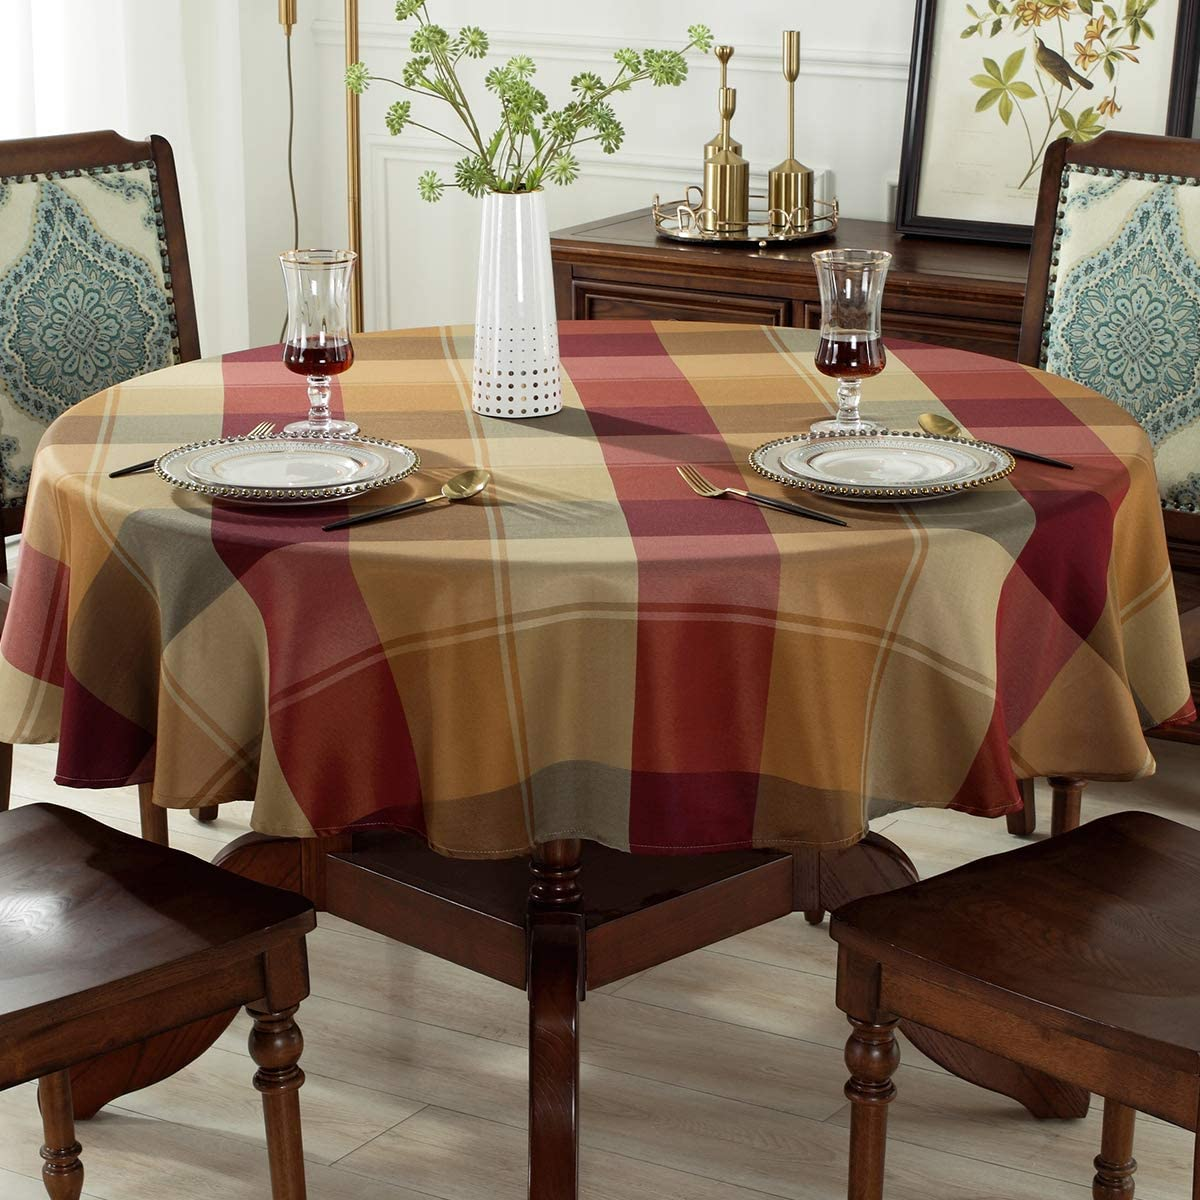 4-6 Seats Round,70 , Red Round Tablecloth Checkered Style Polyester Table Cloth Dust-Proof Wrinkle Resistant Heavy Weight Table Cover for Kitchen Dinning Tabletop Decoration